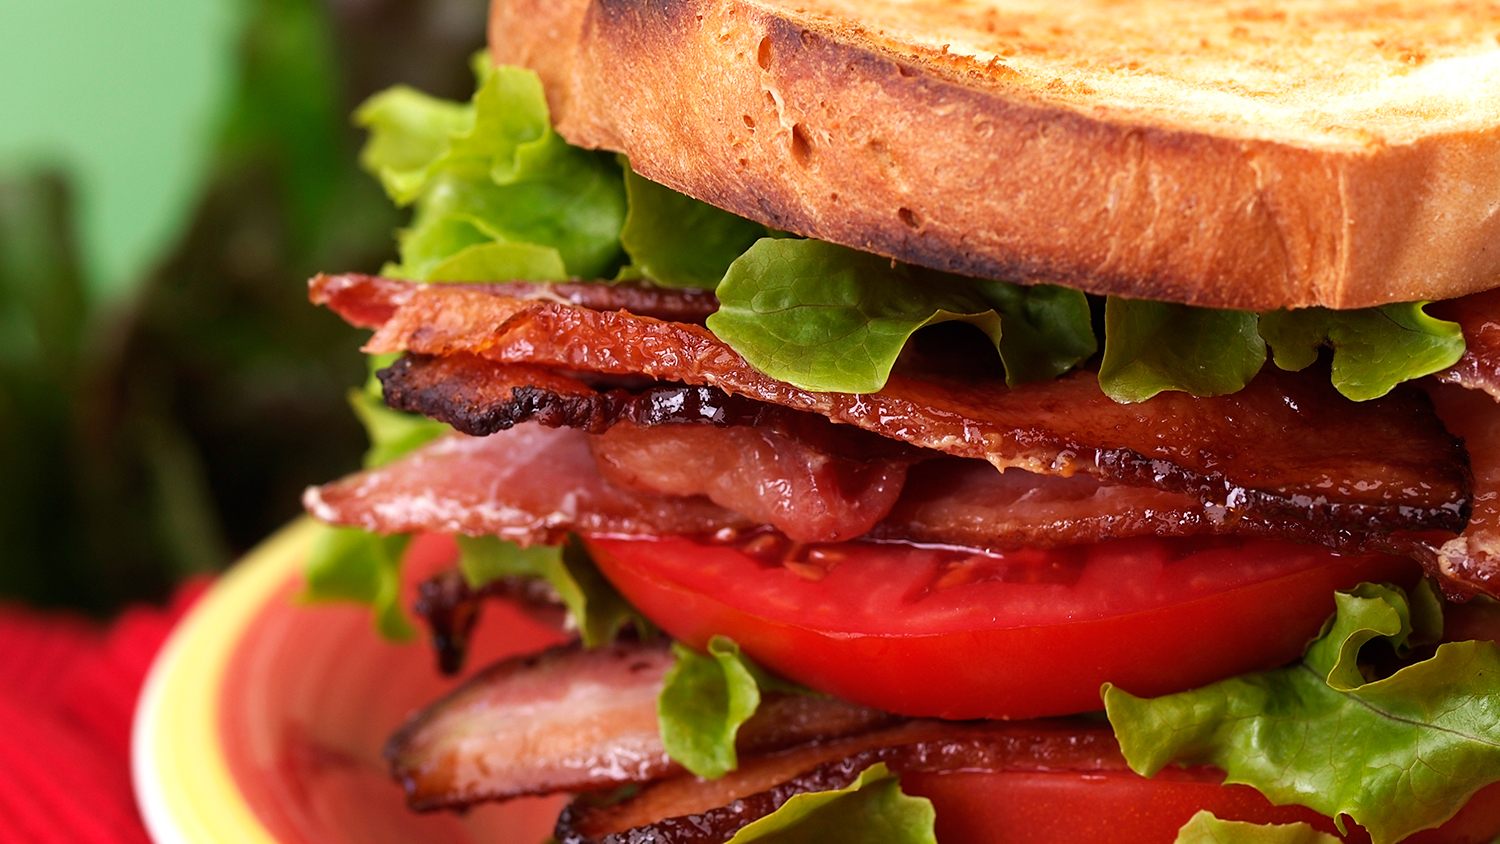 blt carbon footprint